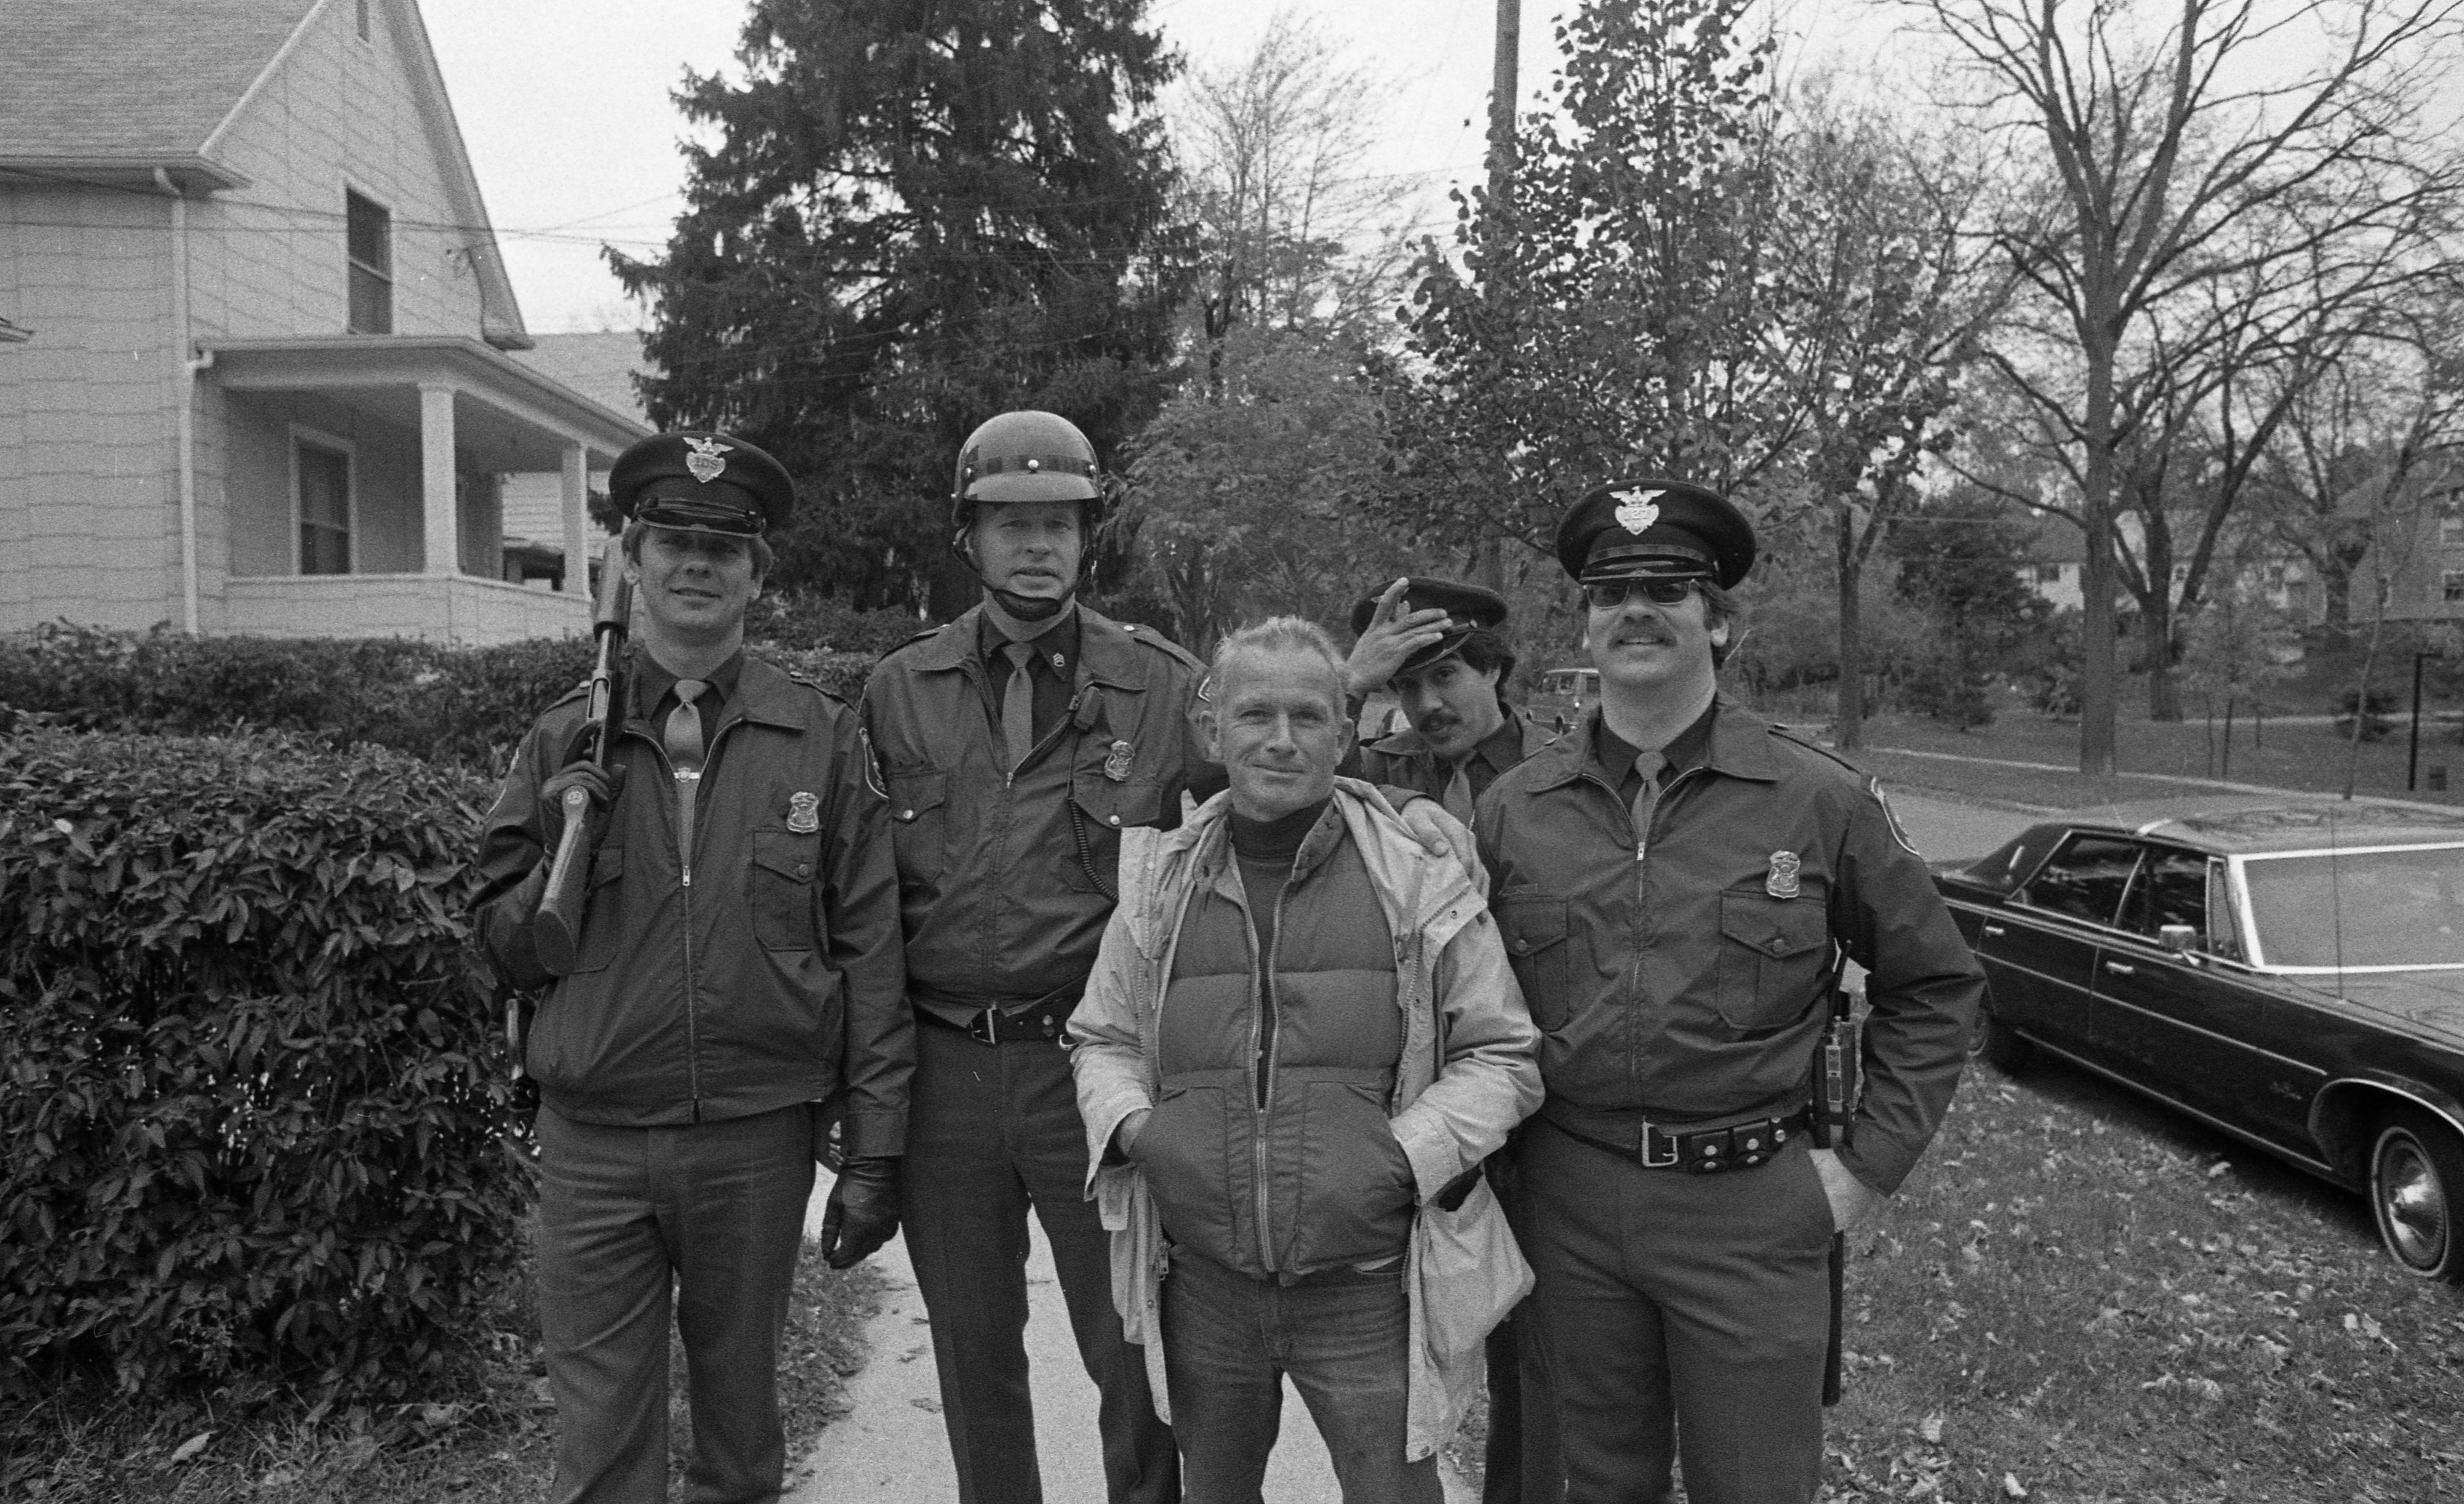 Ann Arbor Police and Ann Arbor News Photographer Jack Stubbs During Search for Escaped Murderer Kyle Johnson, October 1982 image